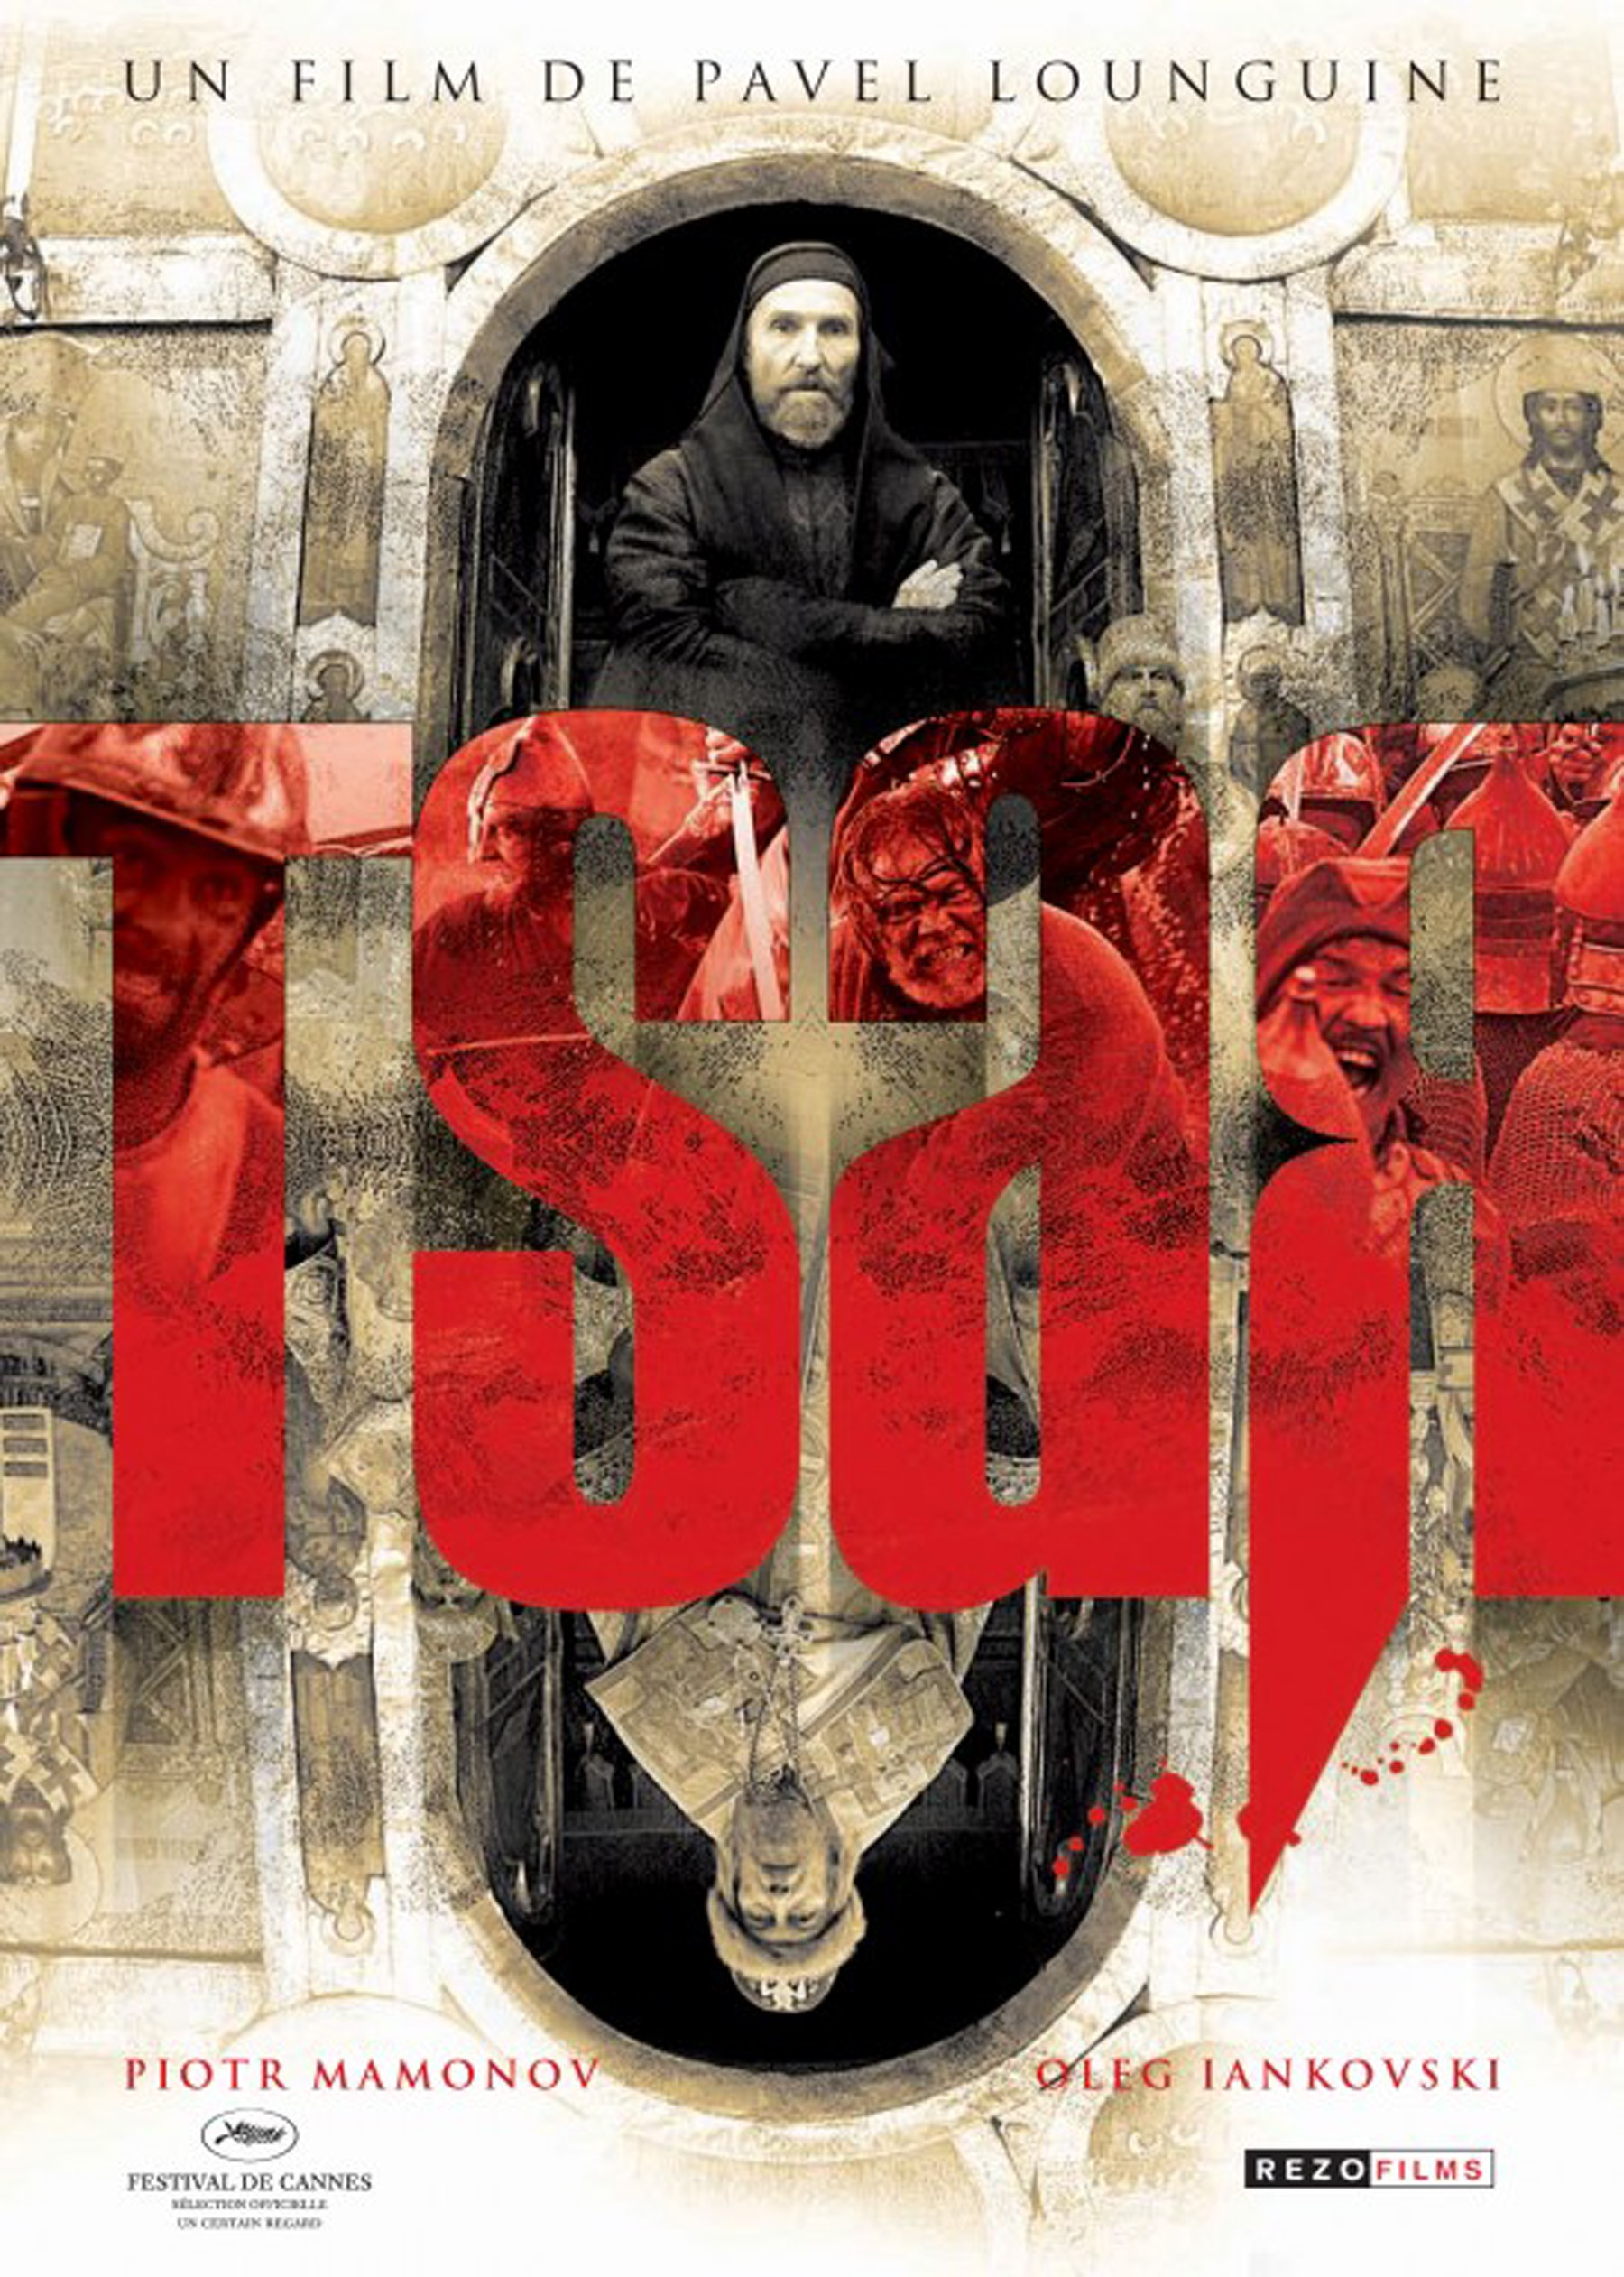 Tsar Lounguine